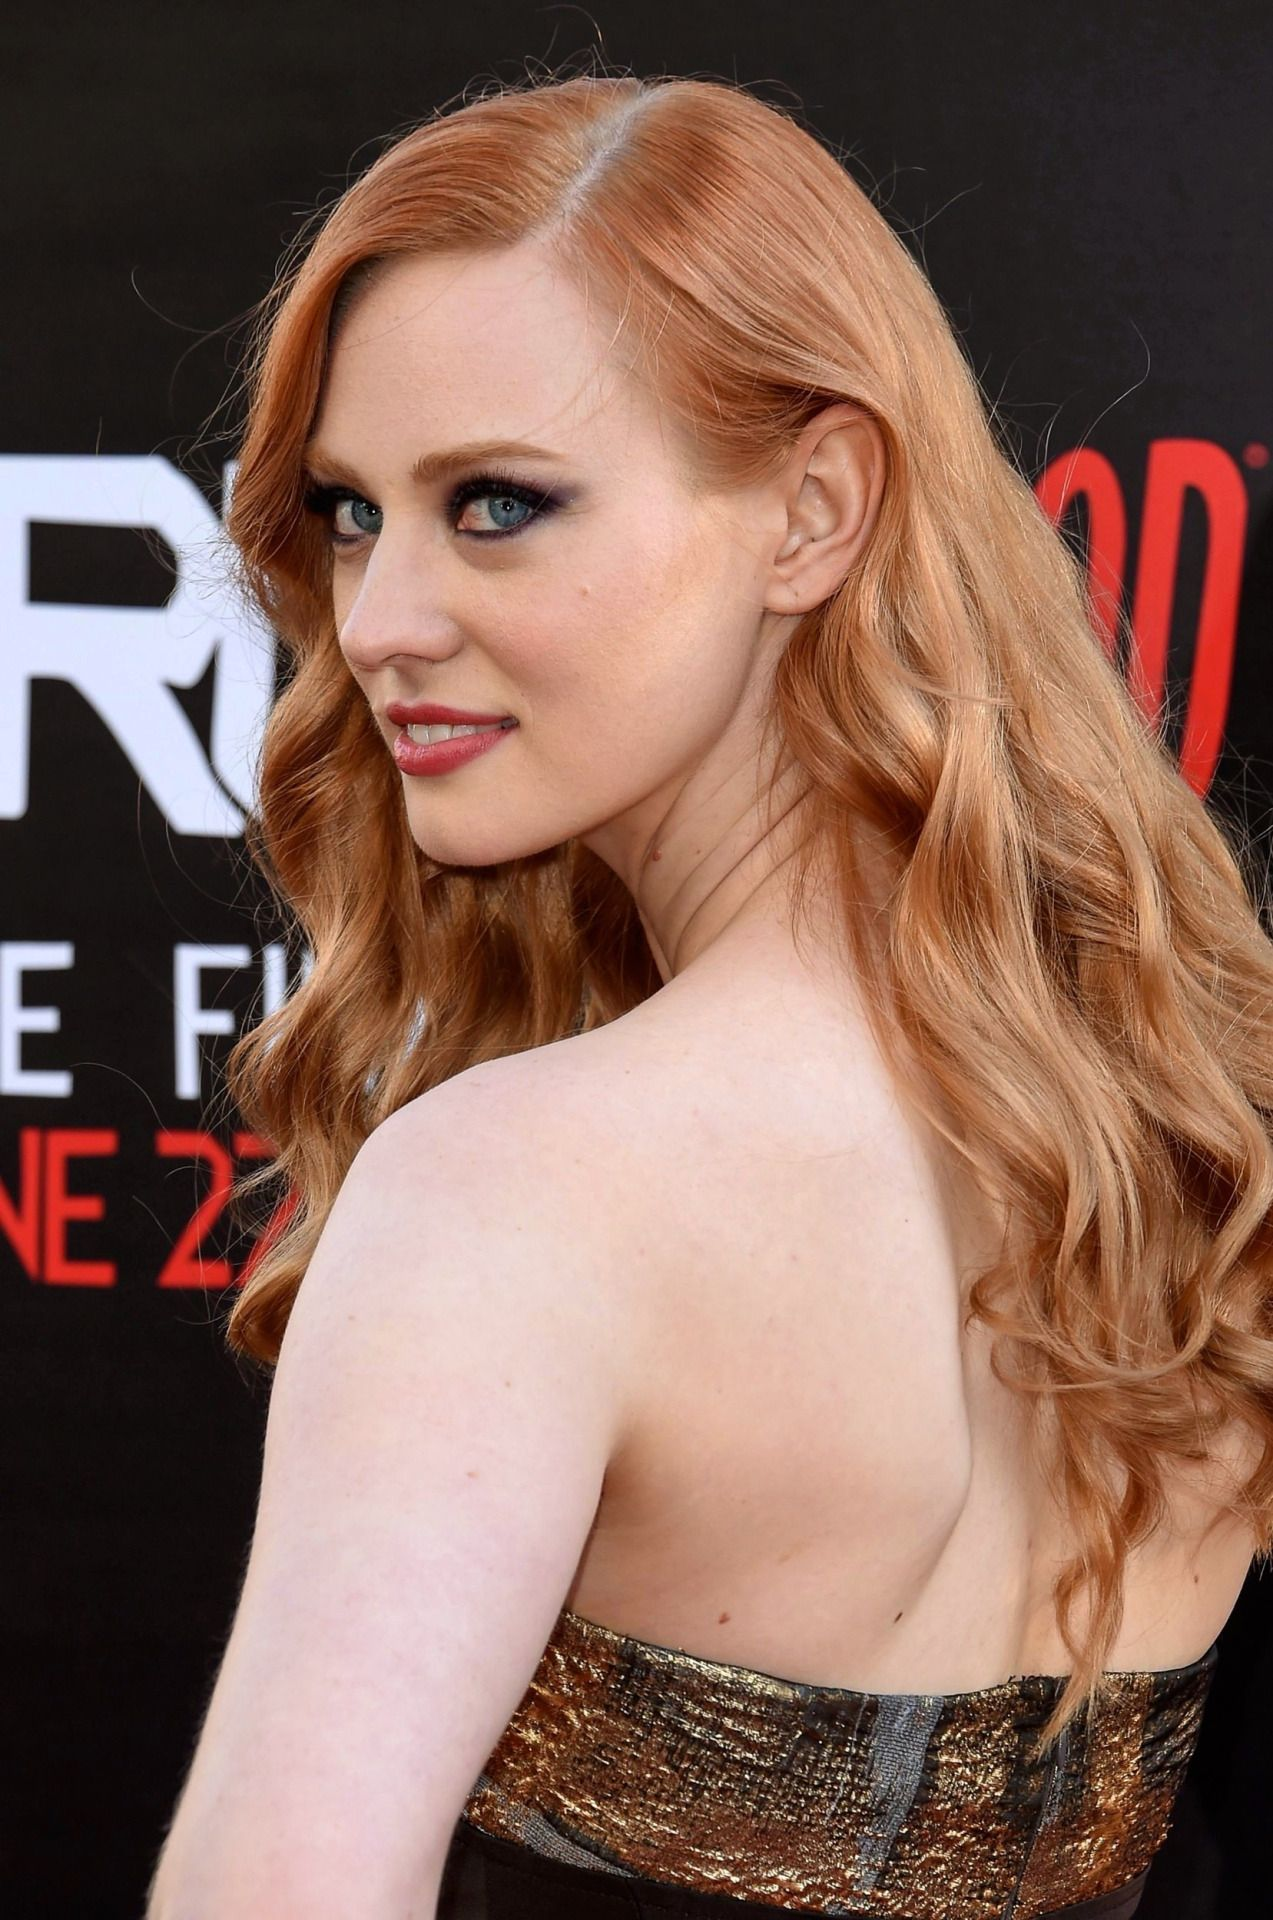 Ass Deborah Ann Woll nudes (91 photos), Pussy, Leaked, Selfie, see through 2018